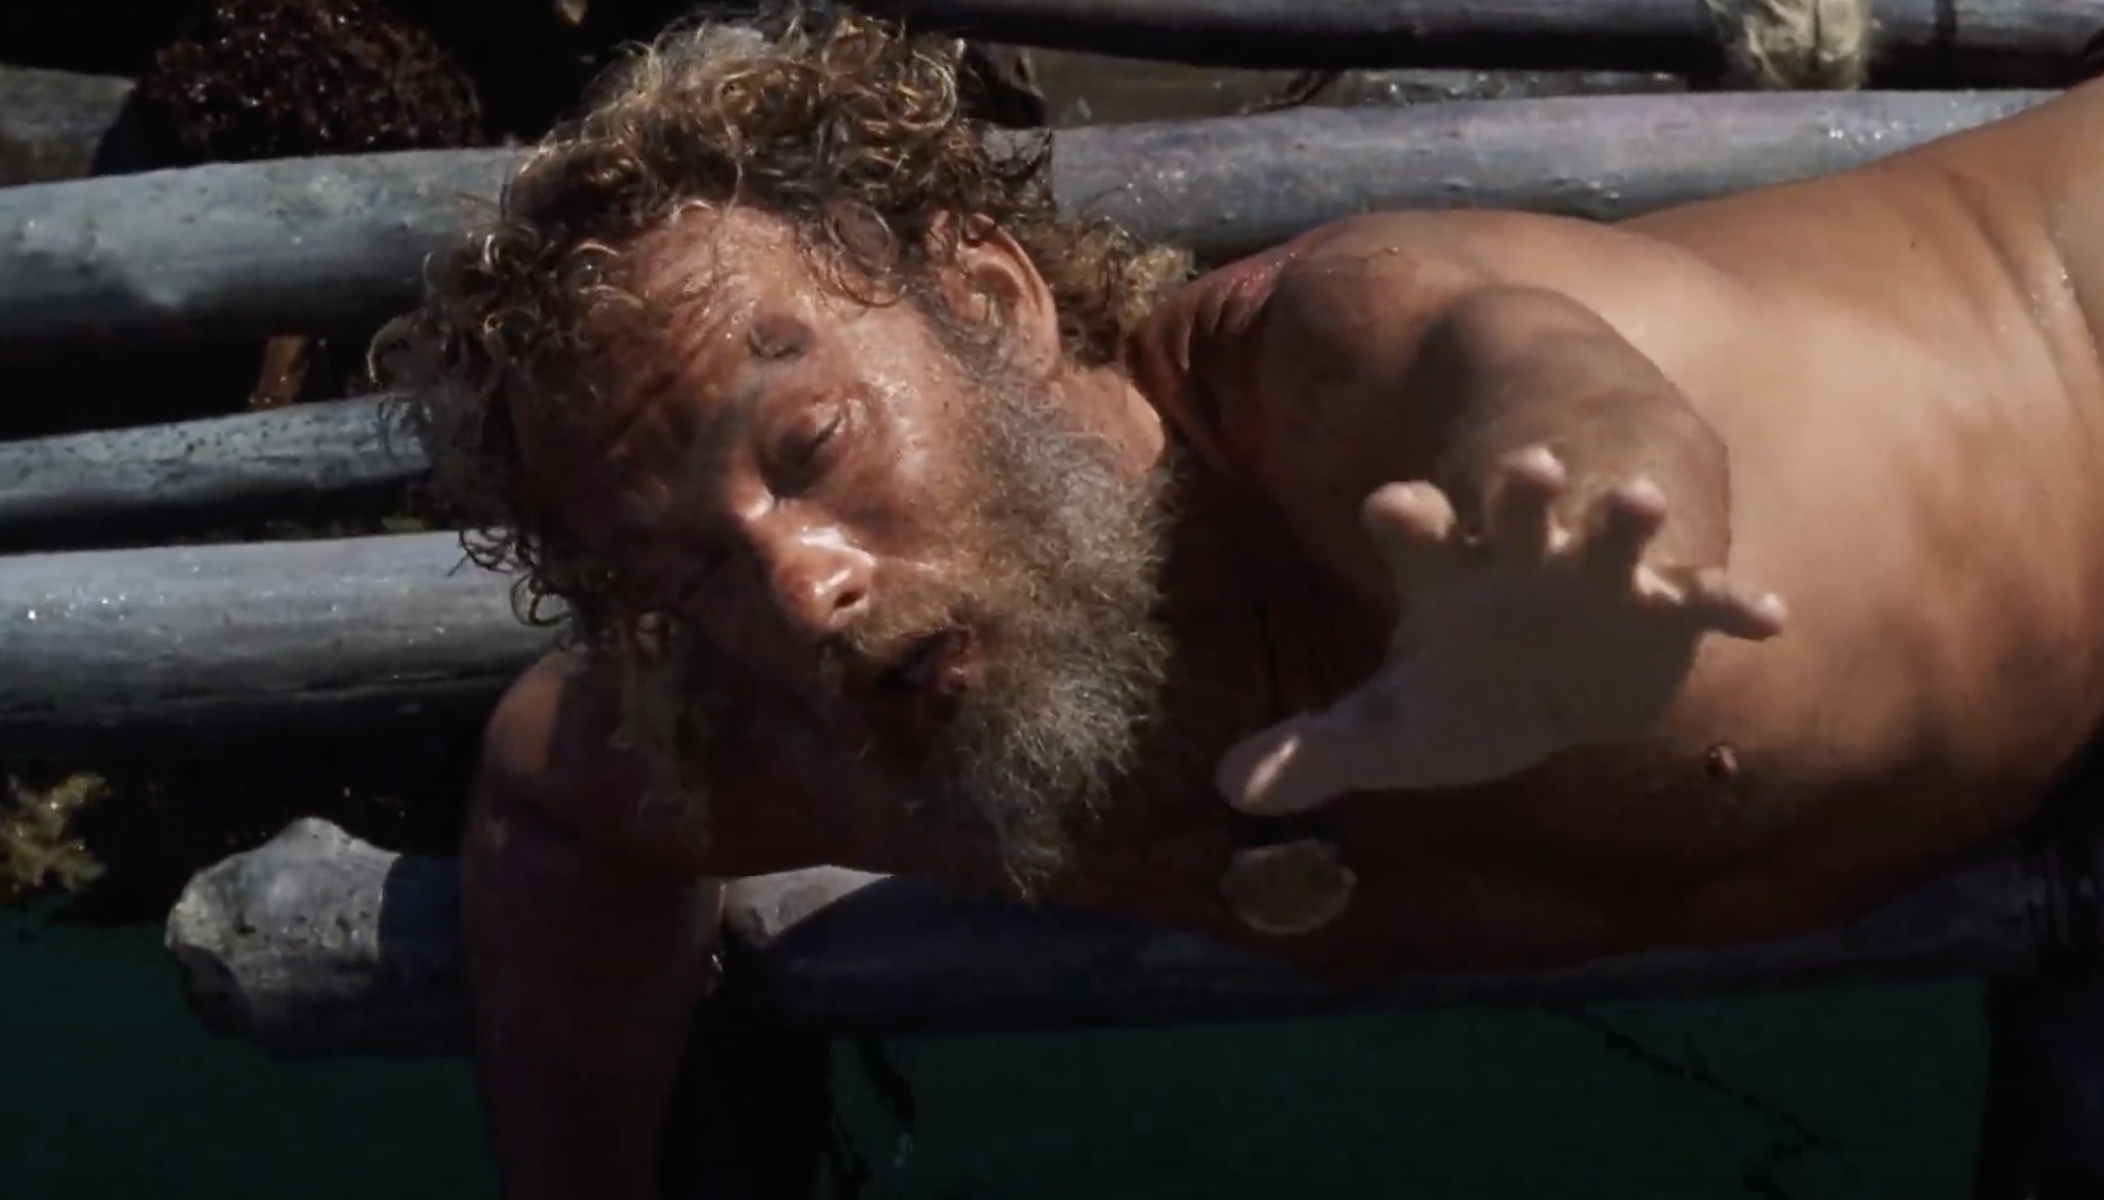 Tom Hanks as Chuck in 'Cast Away' exhausted and struggling to reach out